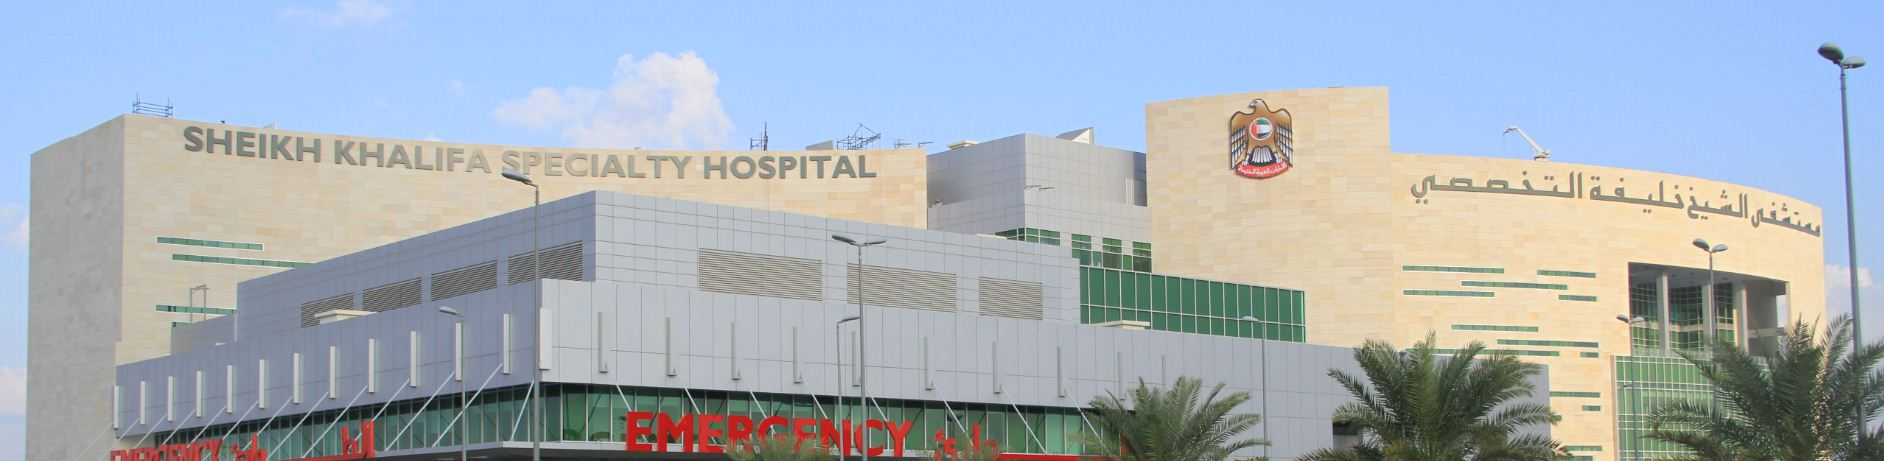 Sheikh Khalifa Specialty Hospital in Rak city